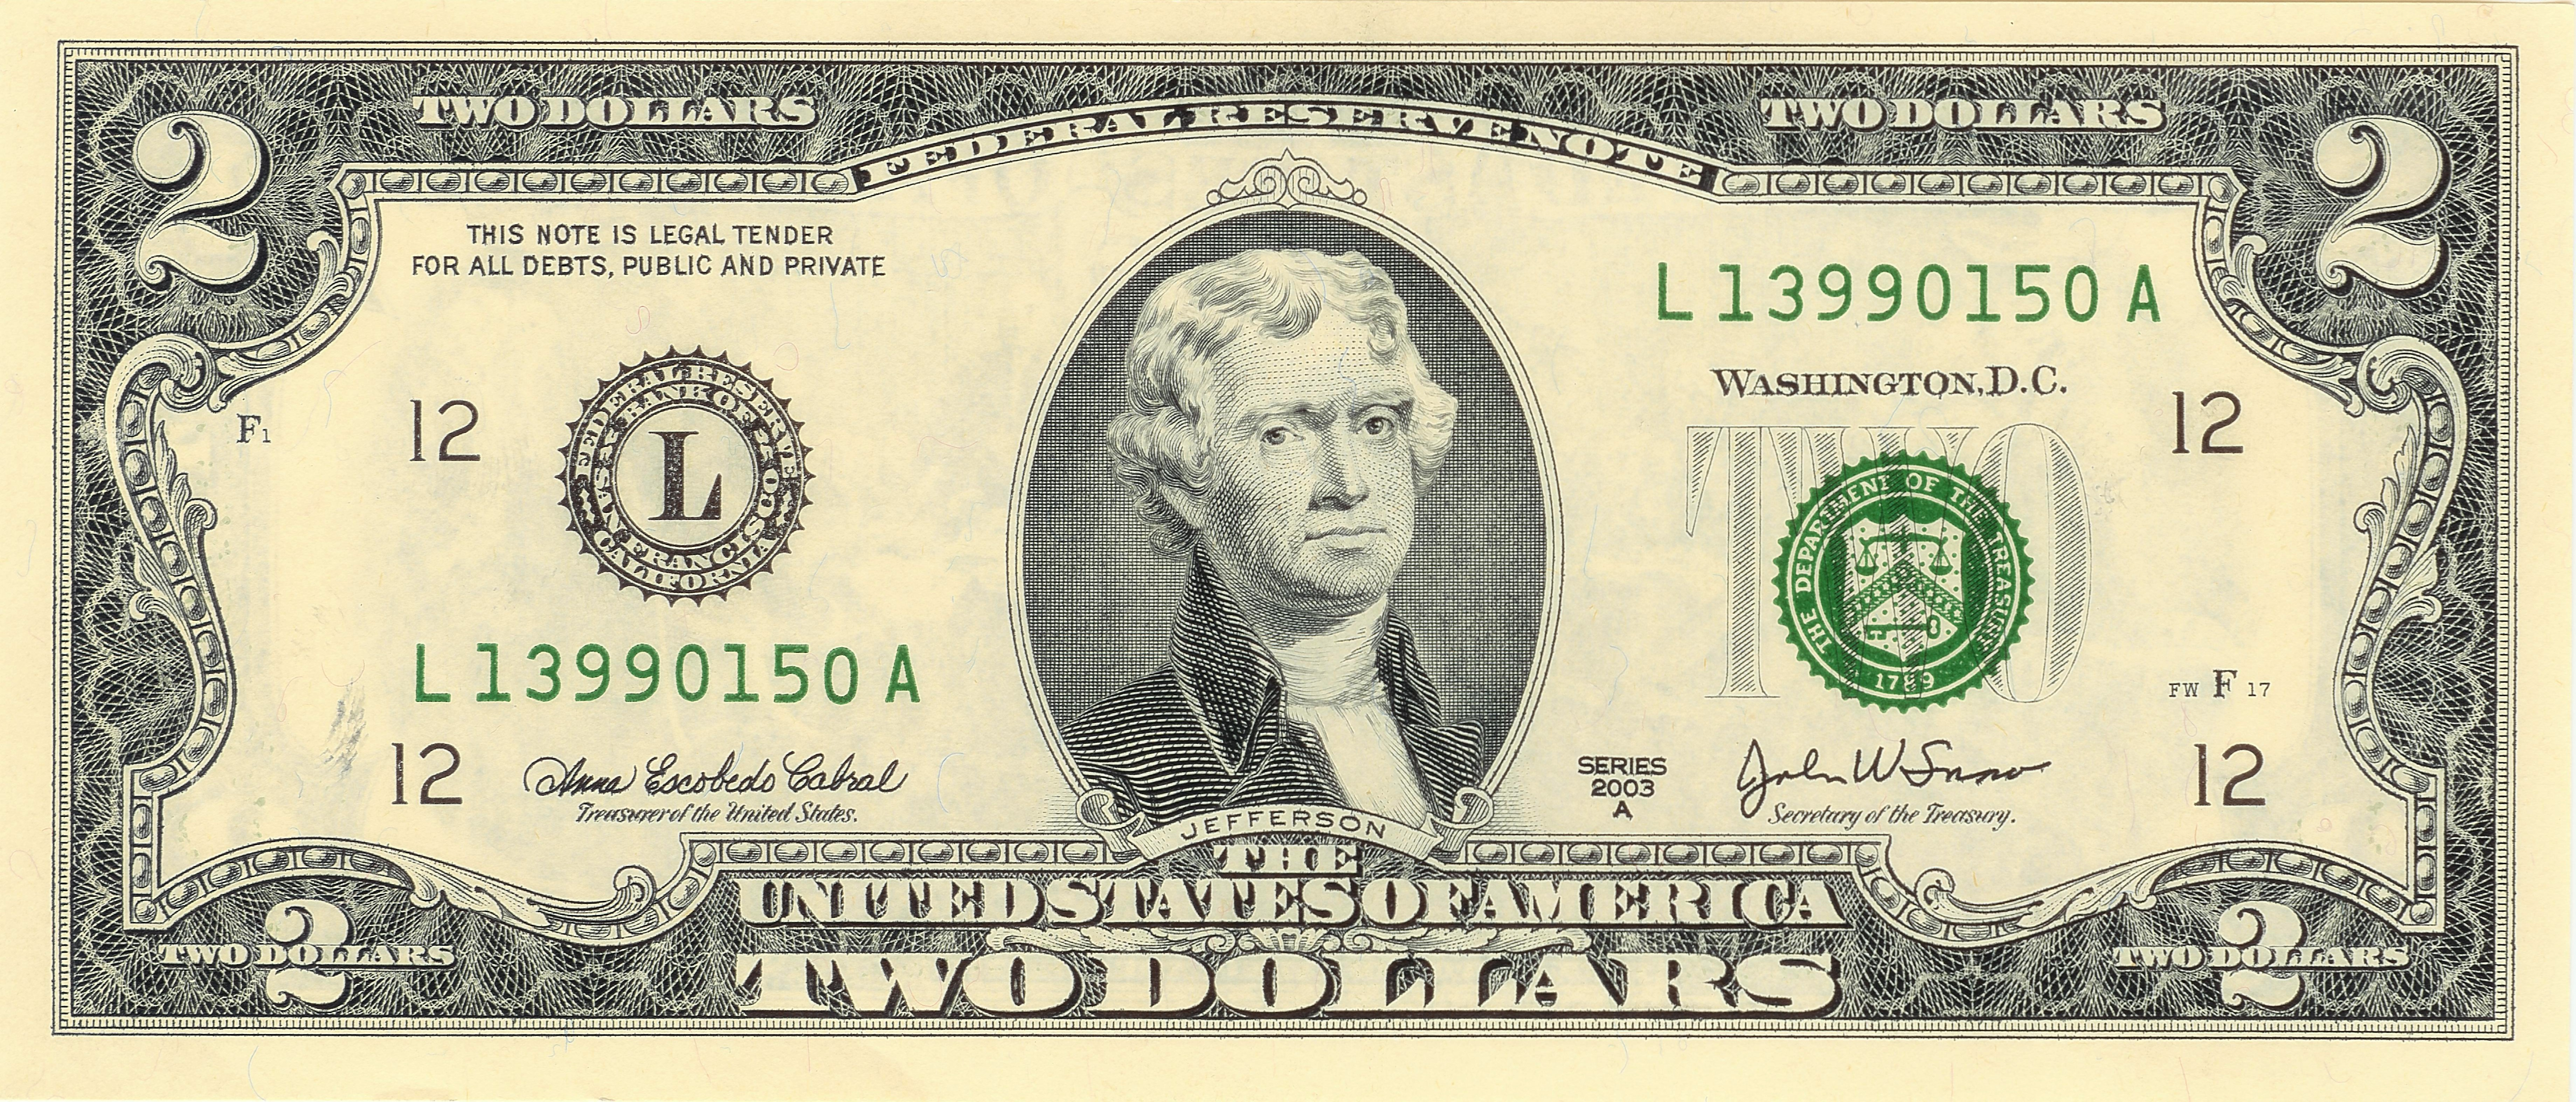 Money Faces On Us Currency